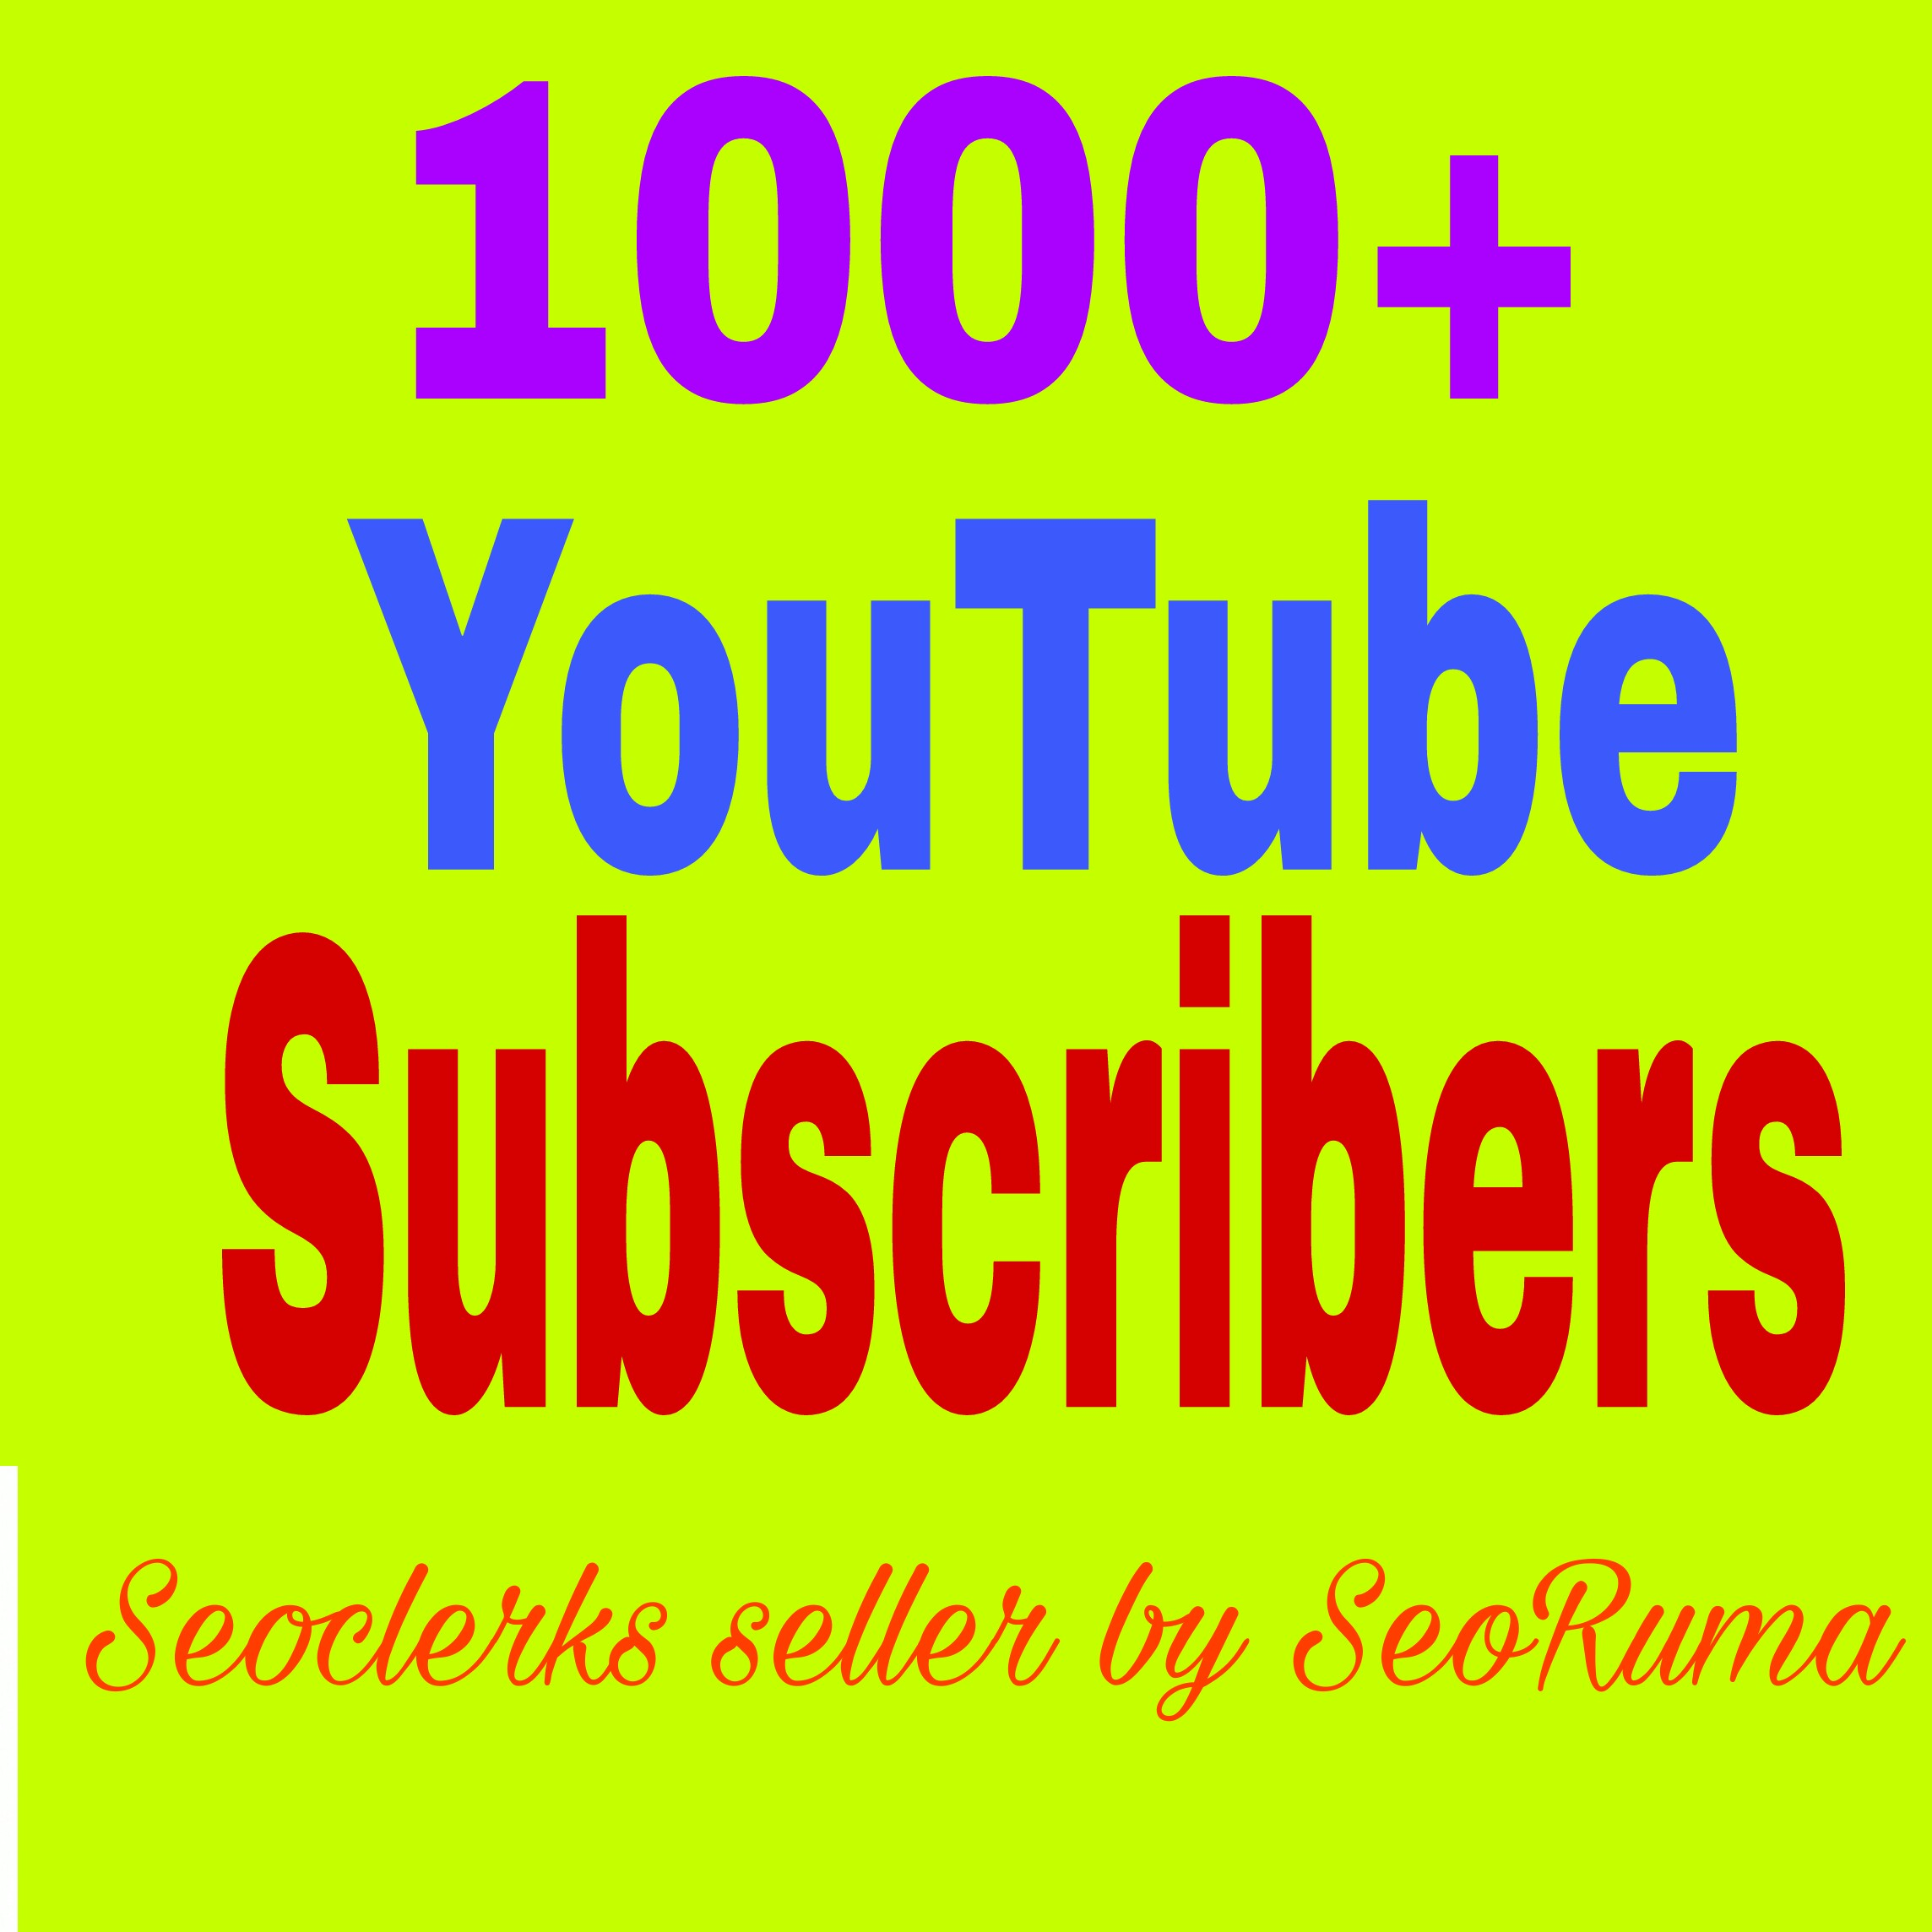 1000+ You Tube Chanel Subs Cribers non drop guaranteed  Very Fast in 24-72 hours complete just